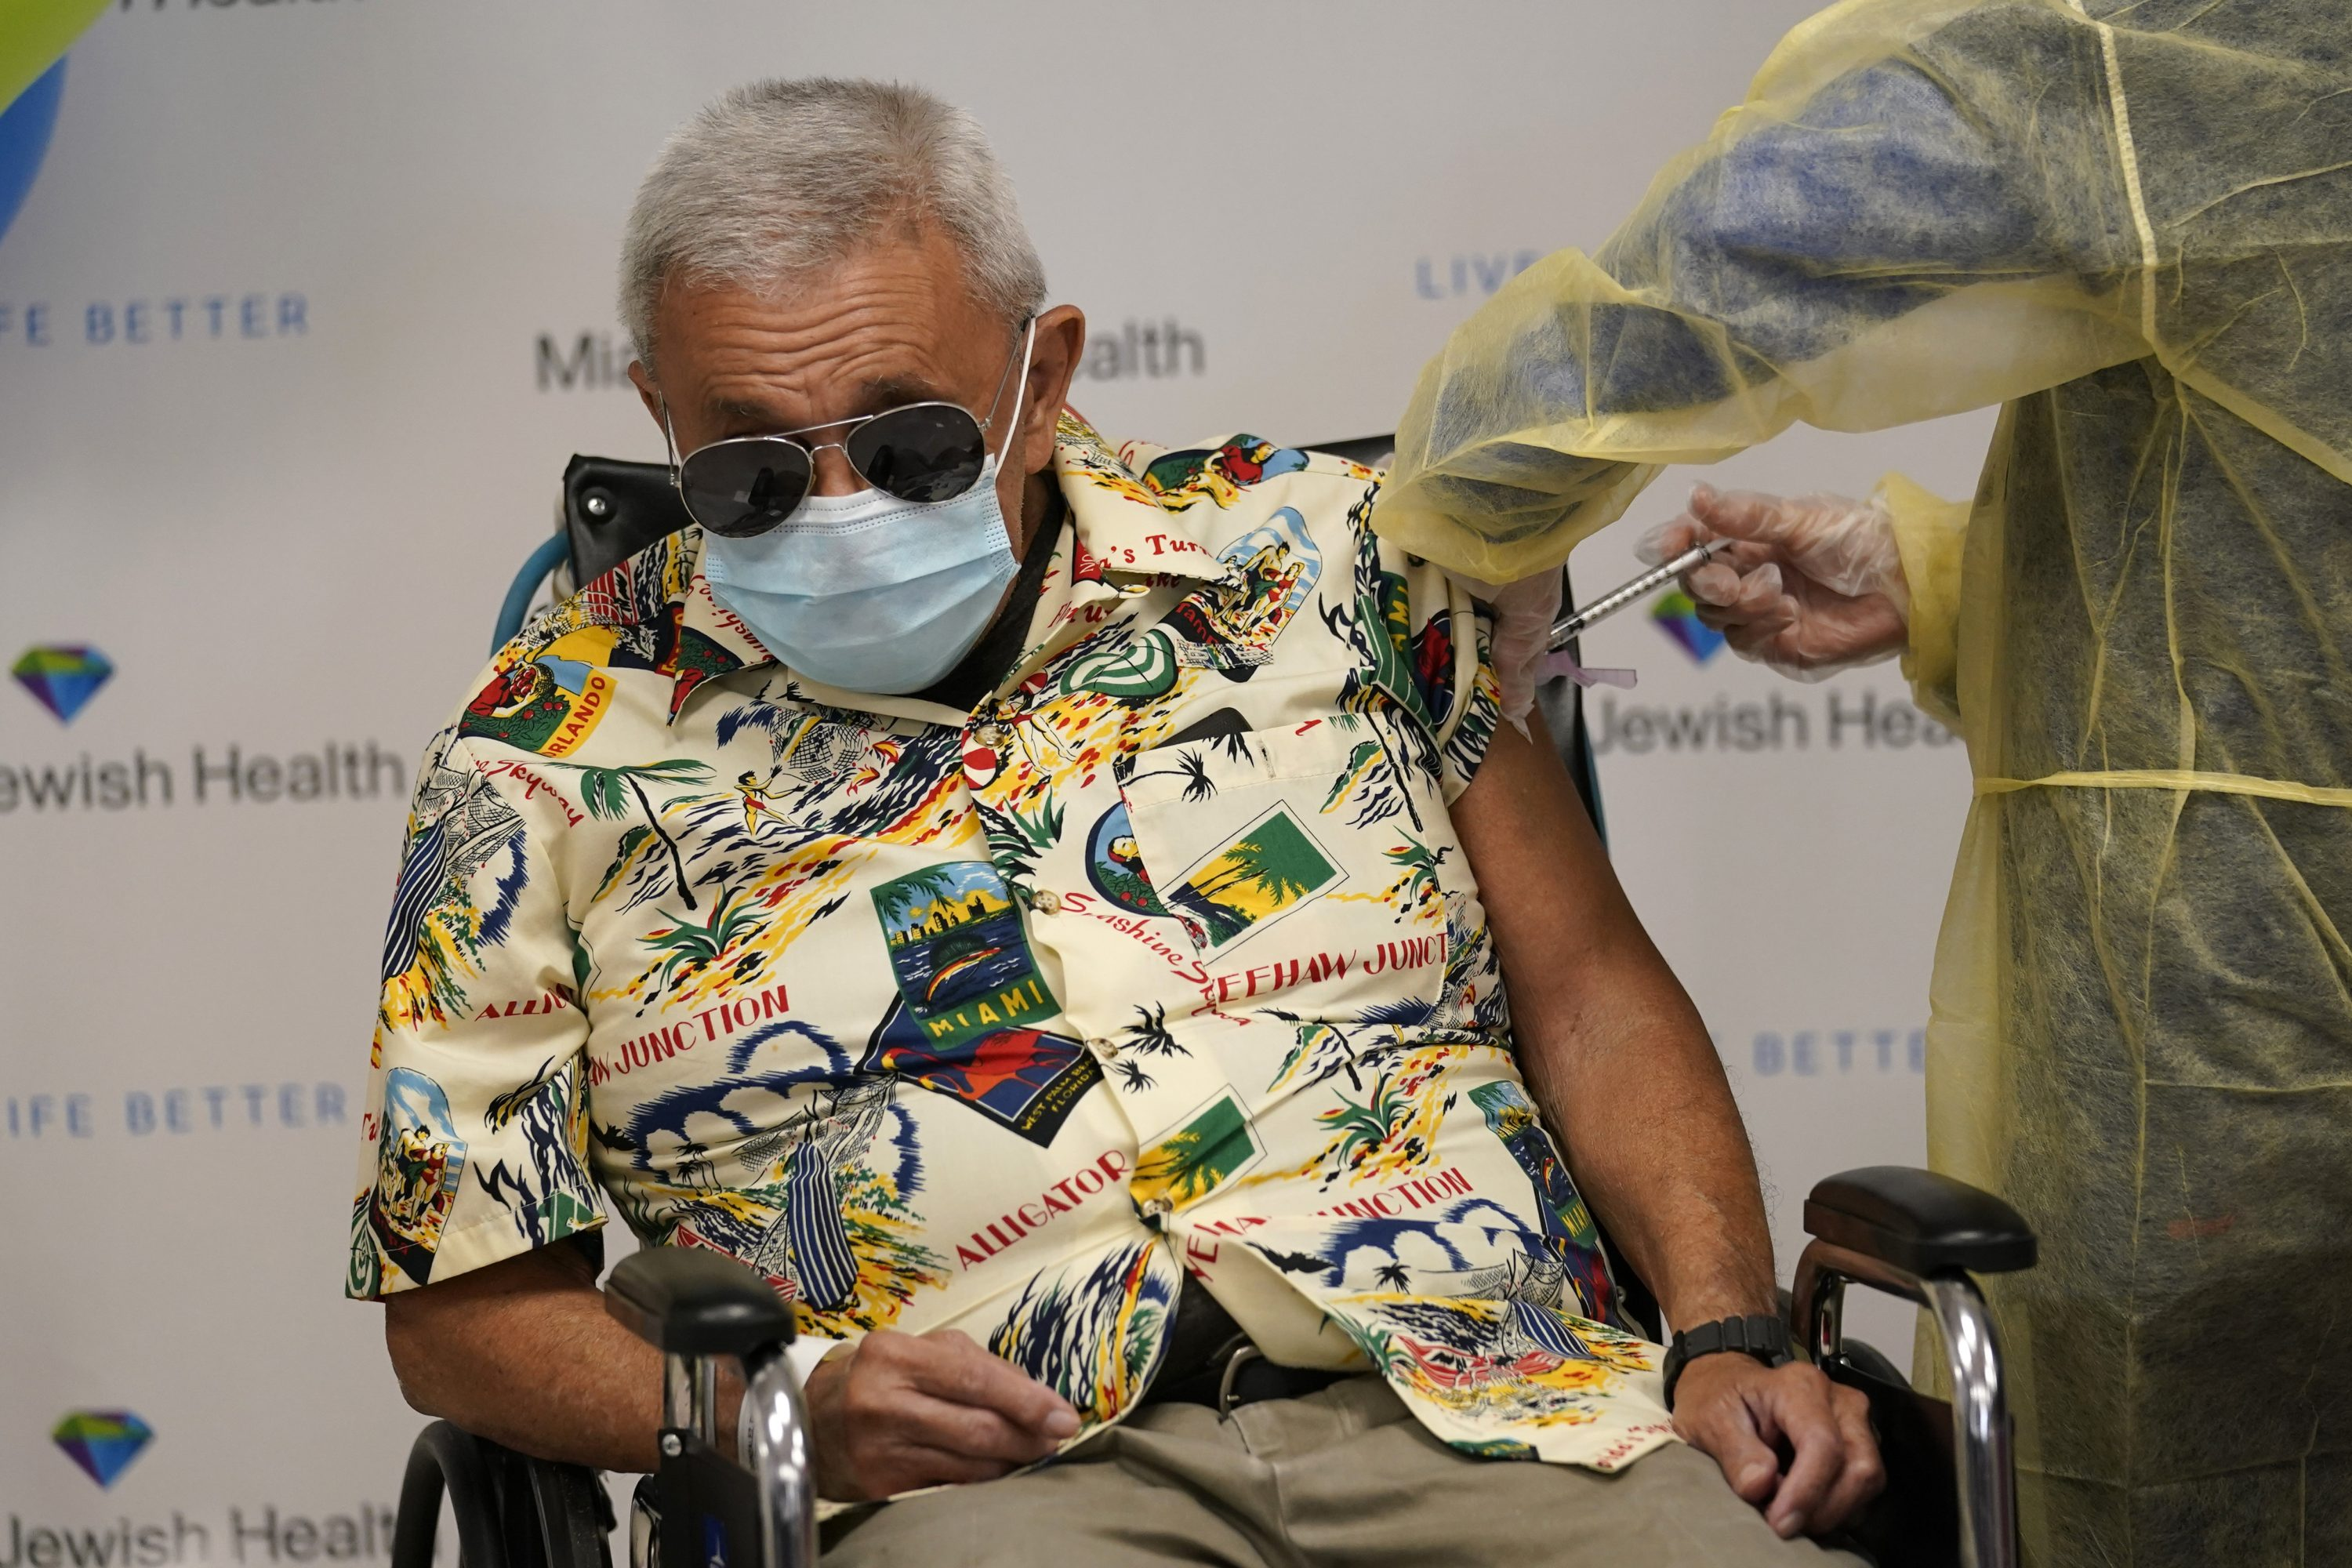 An elderly man is inoculated with the Moderna COVID-19 vaccine